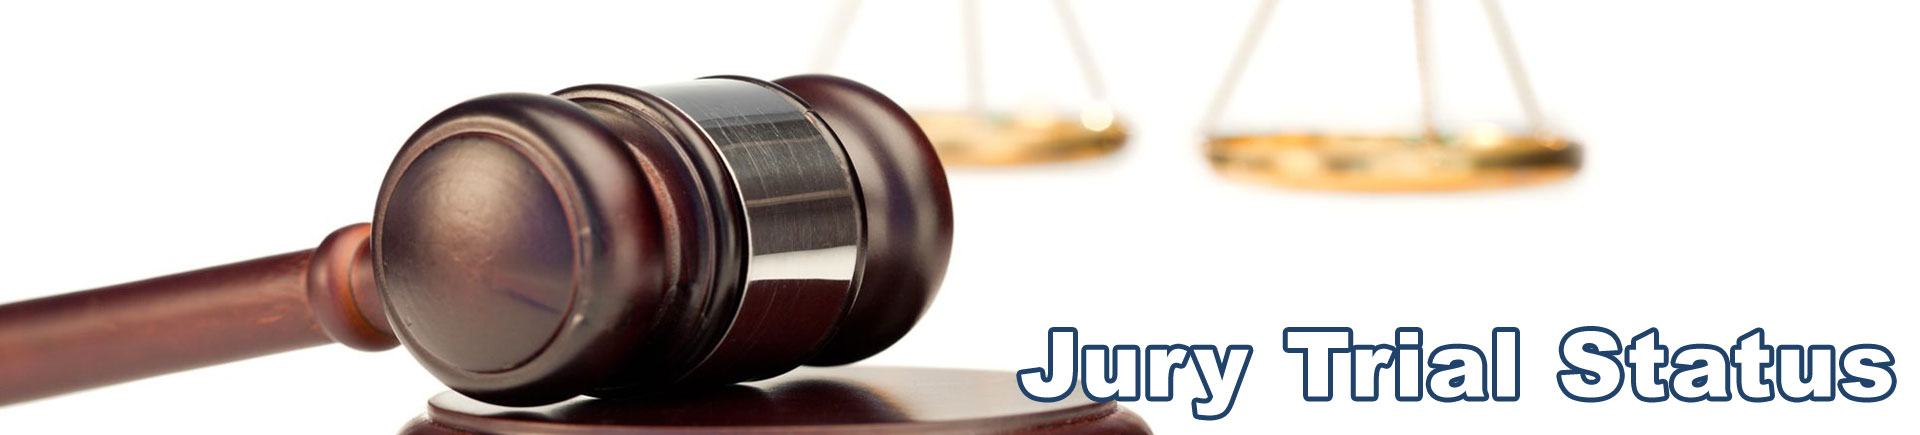 Lincoln County Jury Trial Status